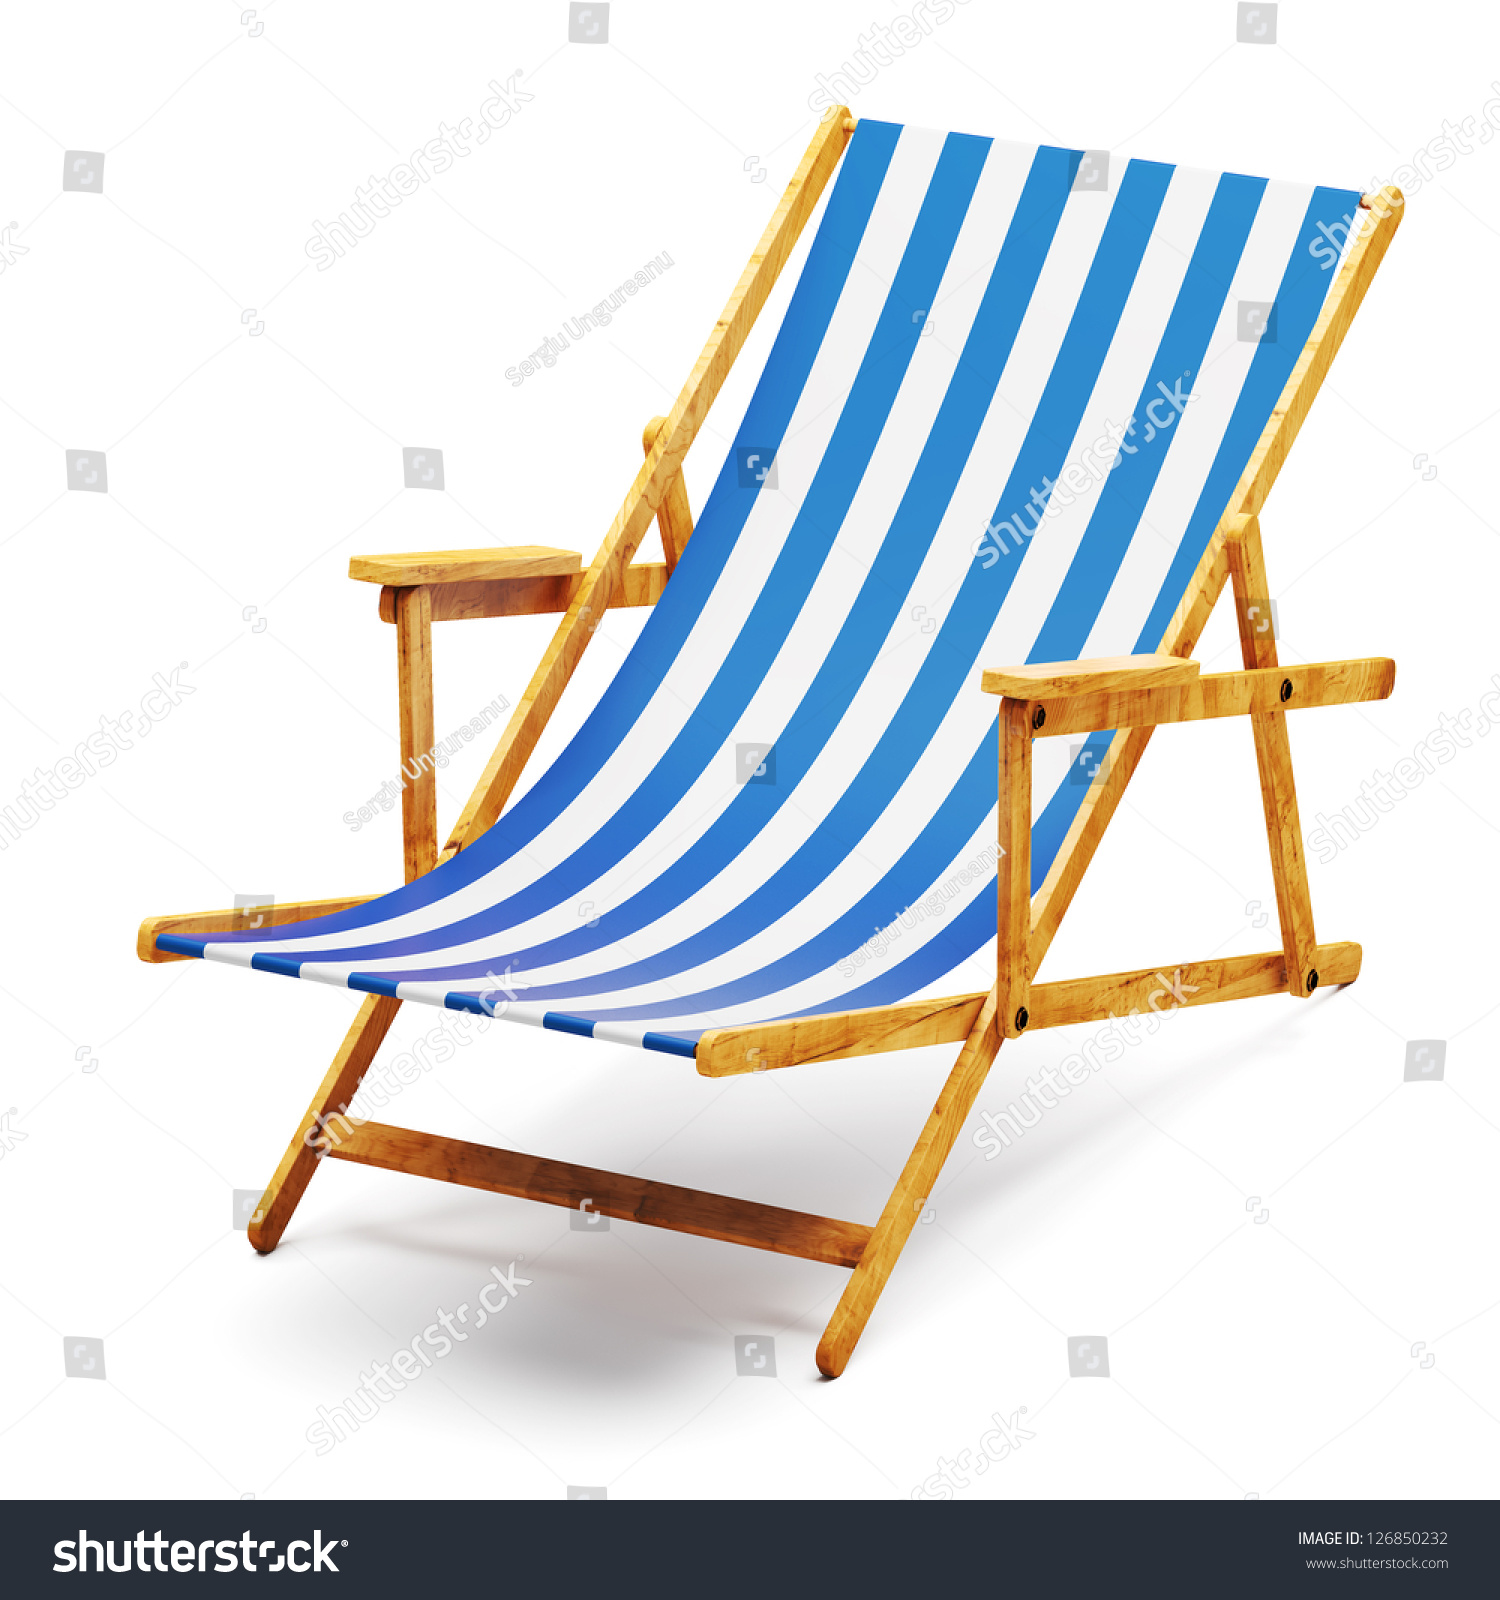 lounge chair towel clips office arms modern beach stock illustration 126850232 shutterstock